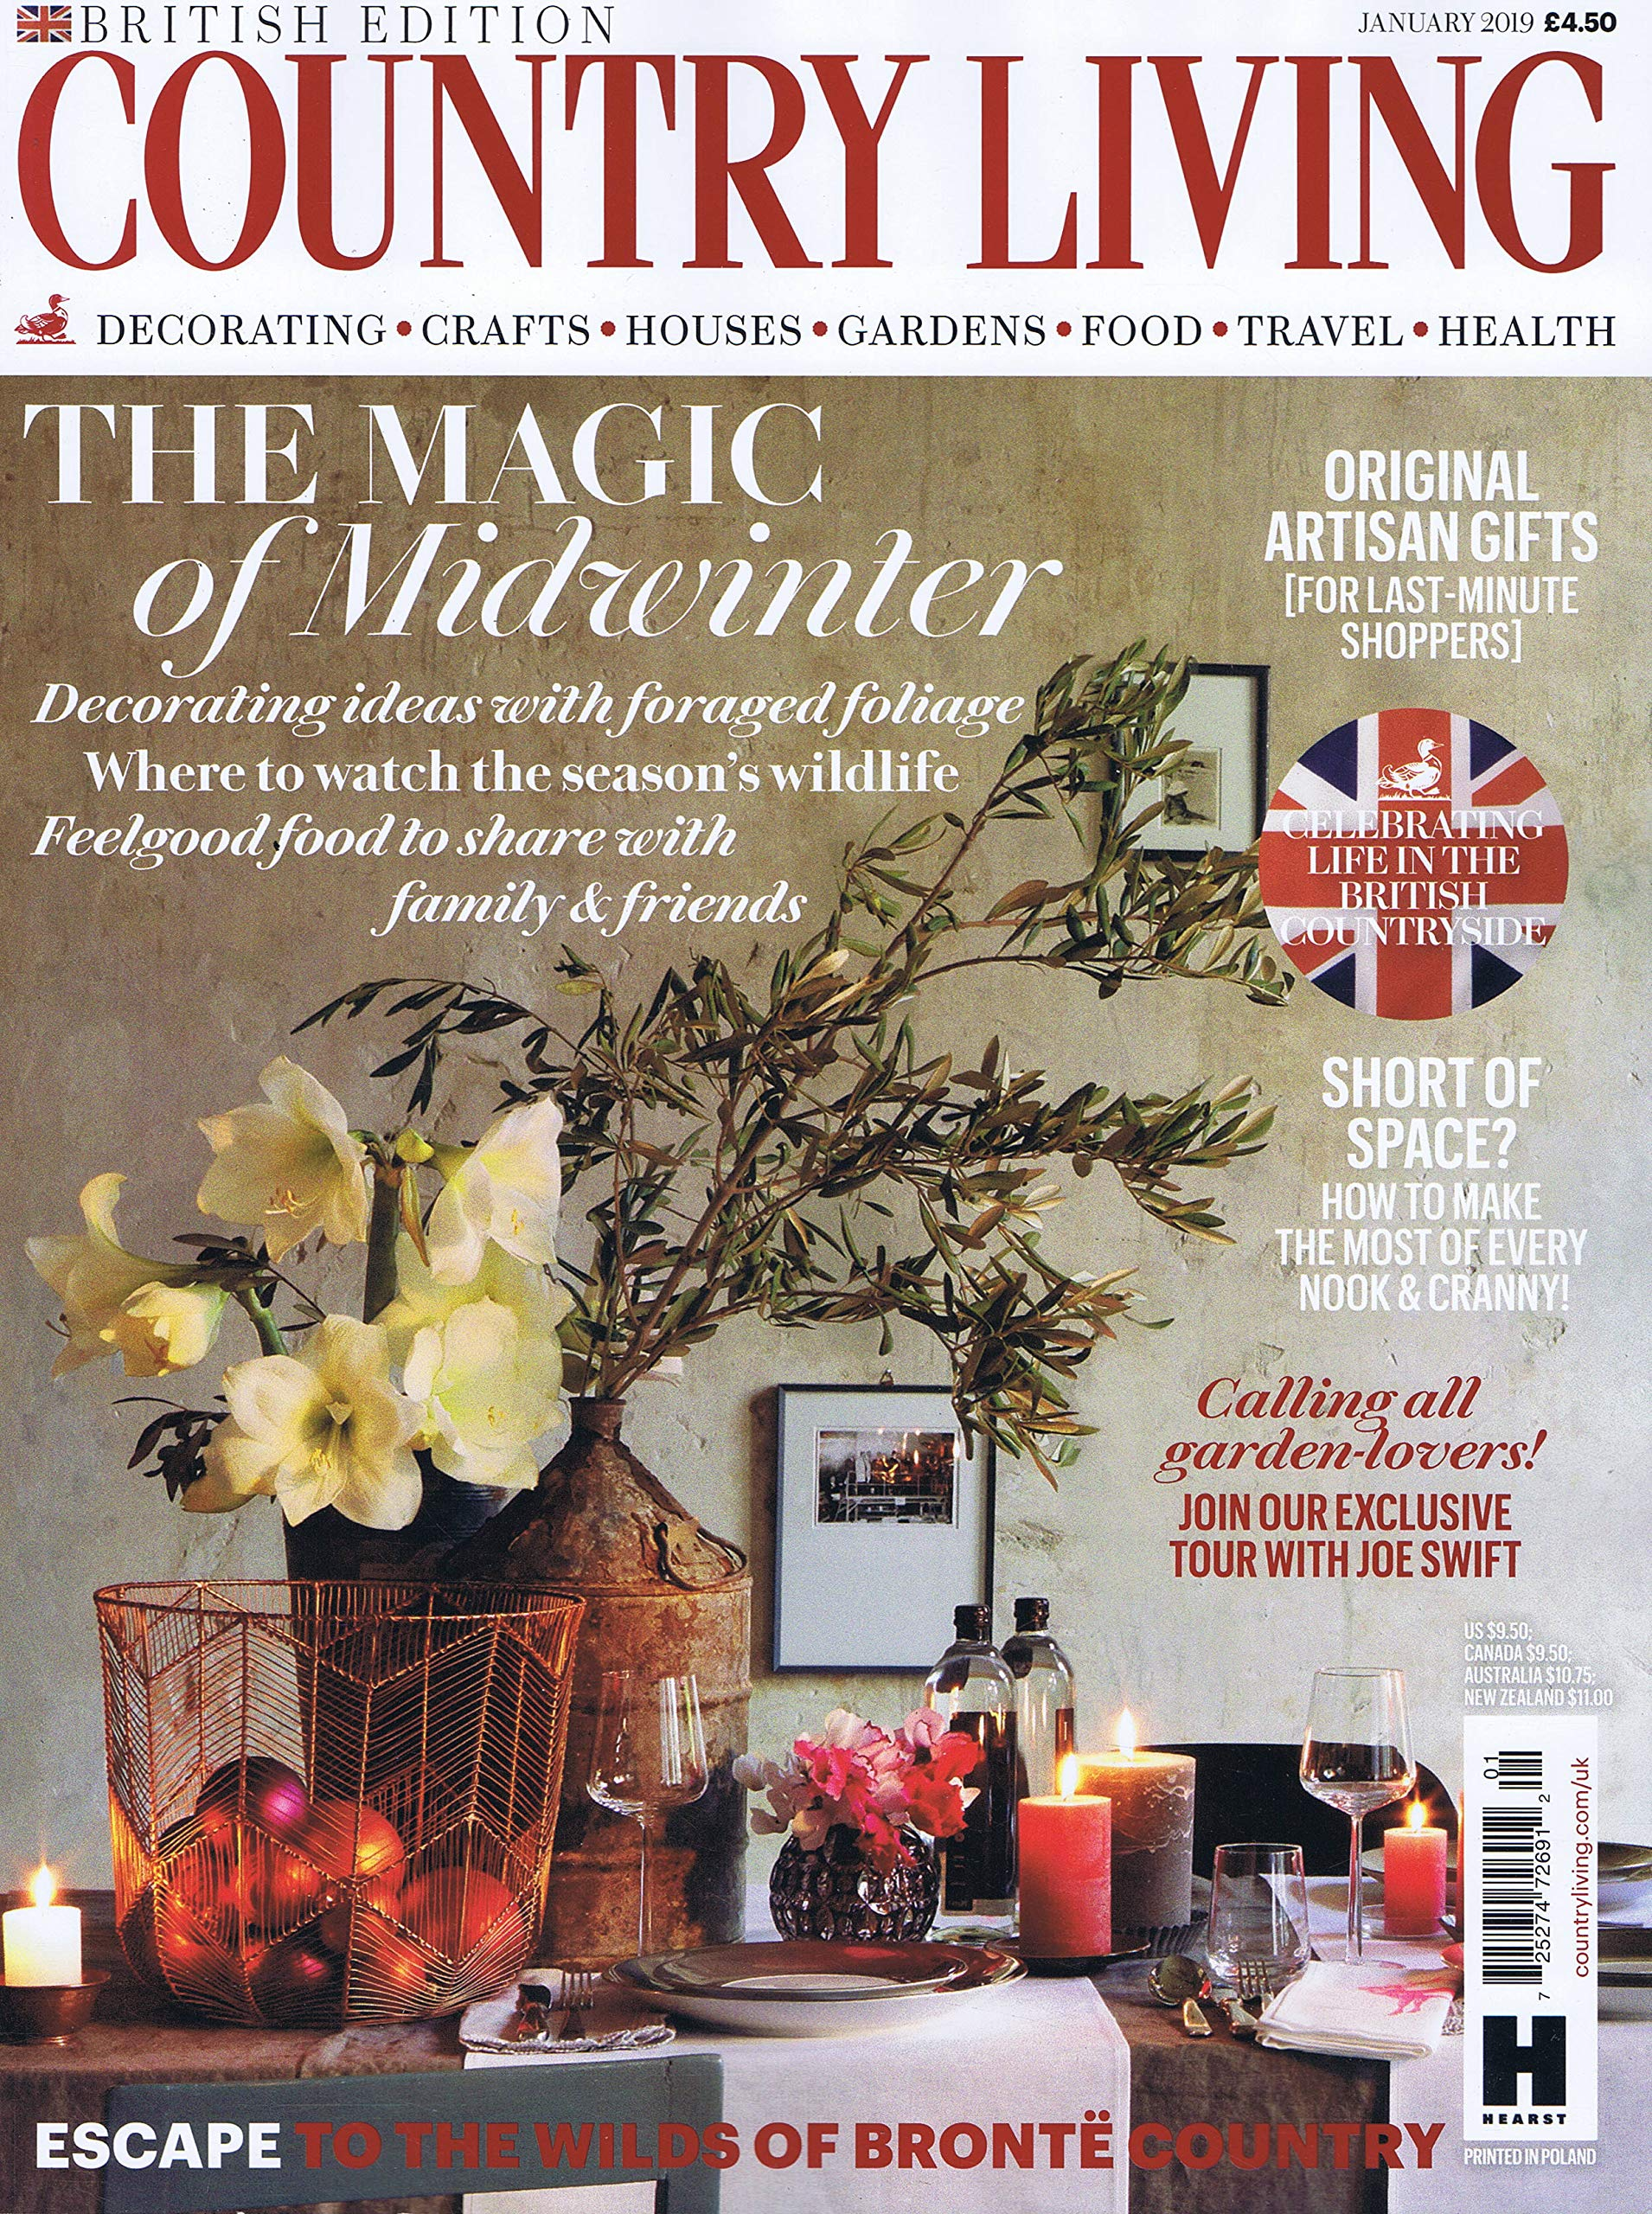 Country Living [UK] January 2019 (単号)